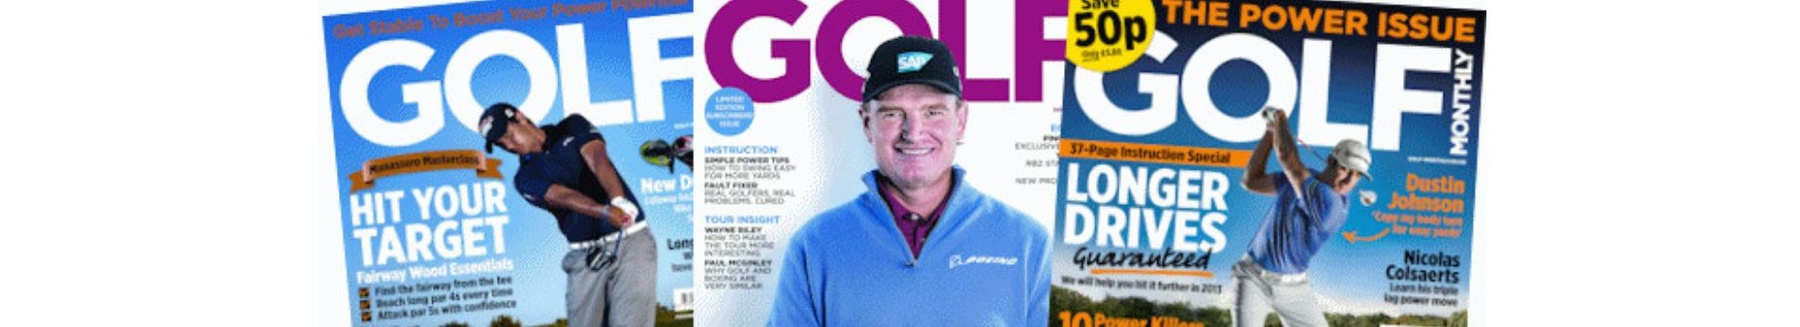 Golf Monthly title pages